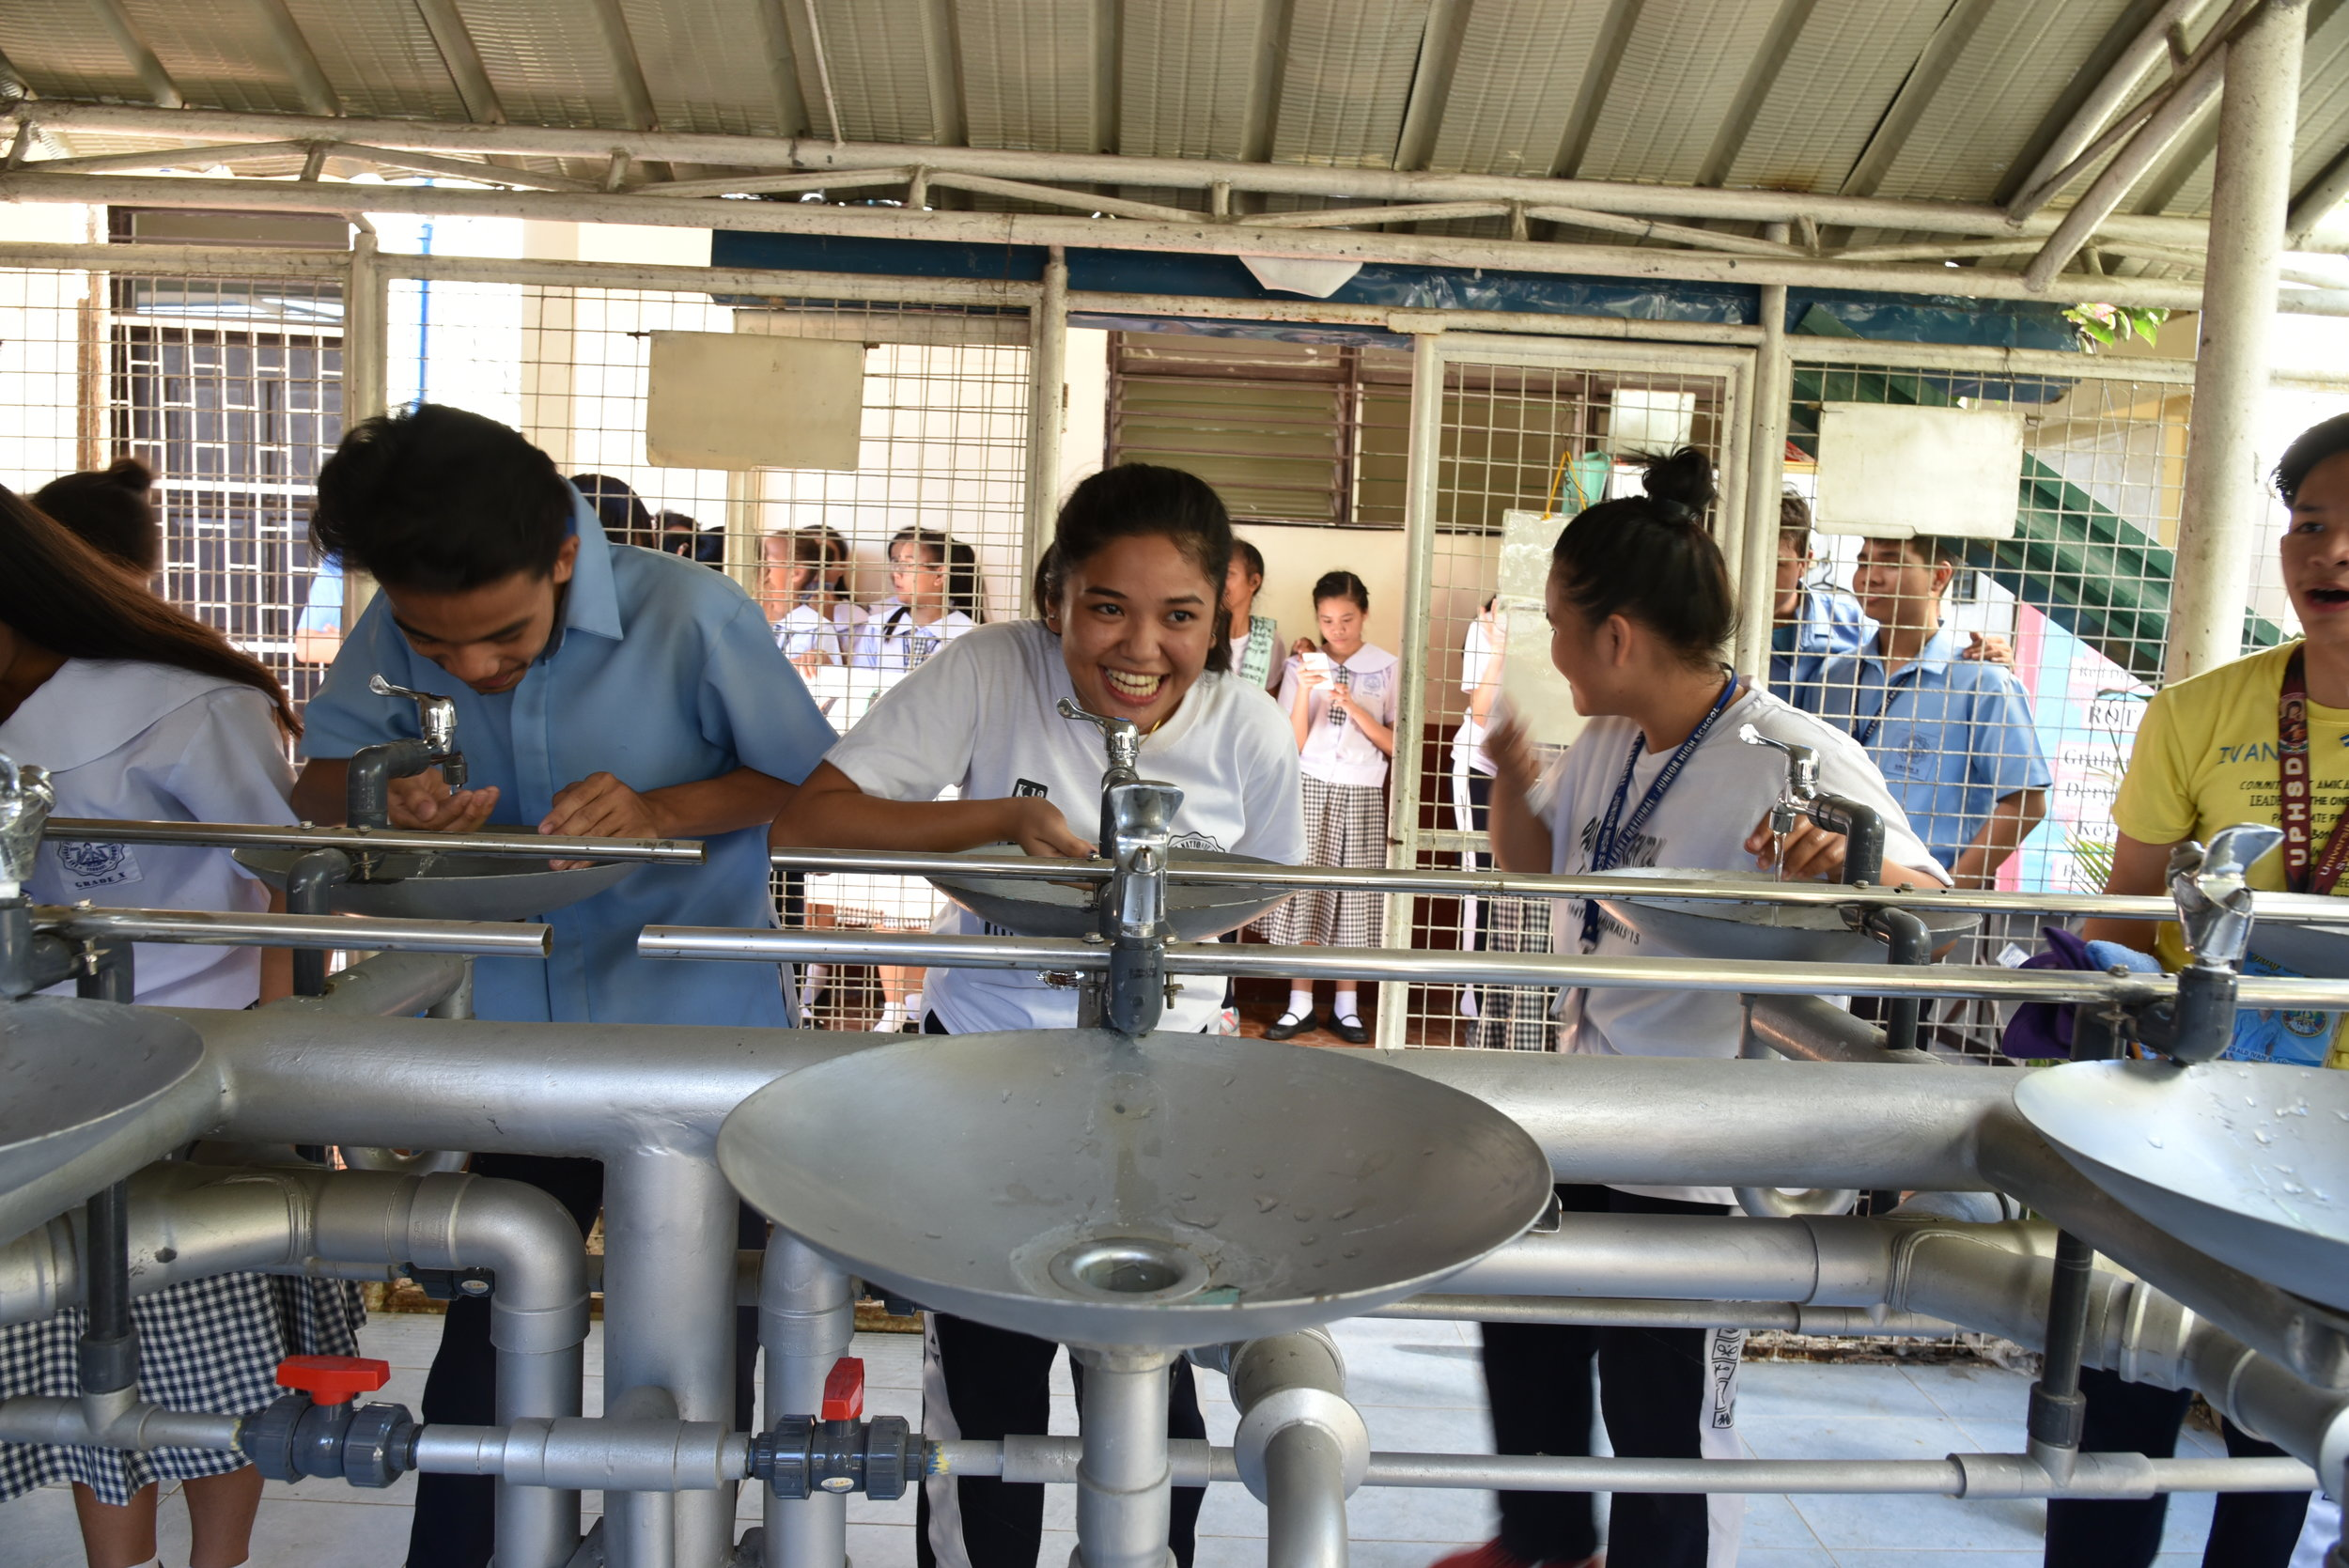 Project Three - Fountain of Life RevitalizationTen years ago, the same Rotary Clubs joined together to provide a way for the youth in this high school to have fresh clean water. Before this fountain, there was no clean water for the thousands of students at this school.We helped provide some new mechanical equipment and maintenance to the fountain.